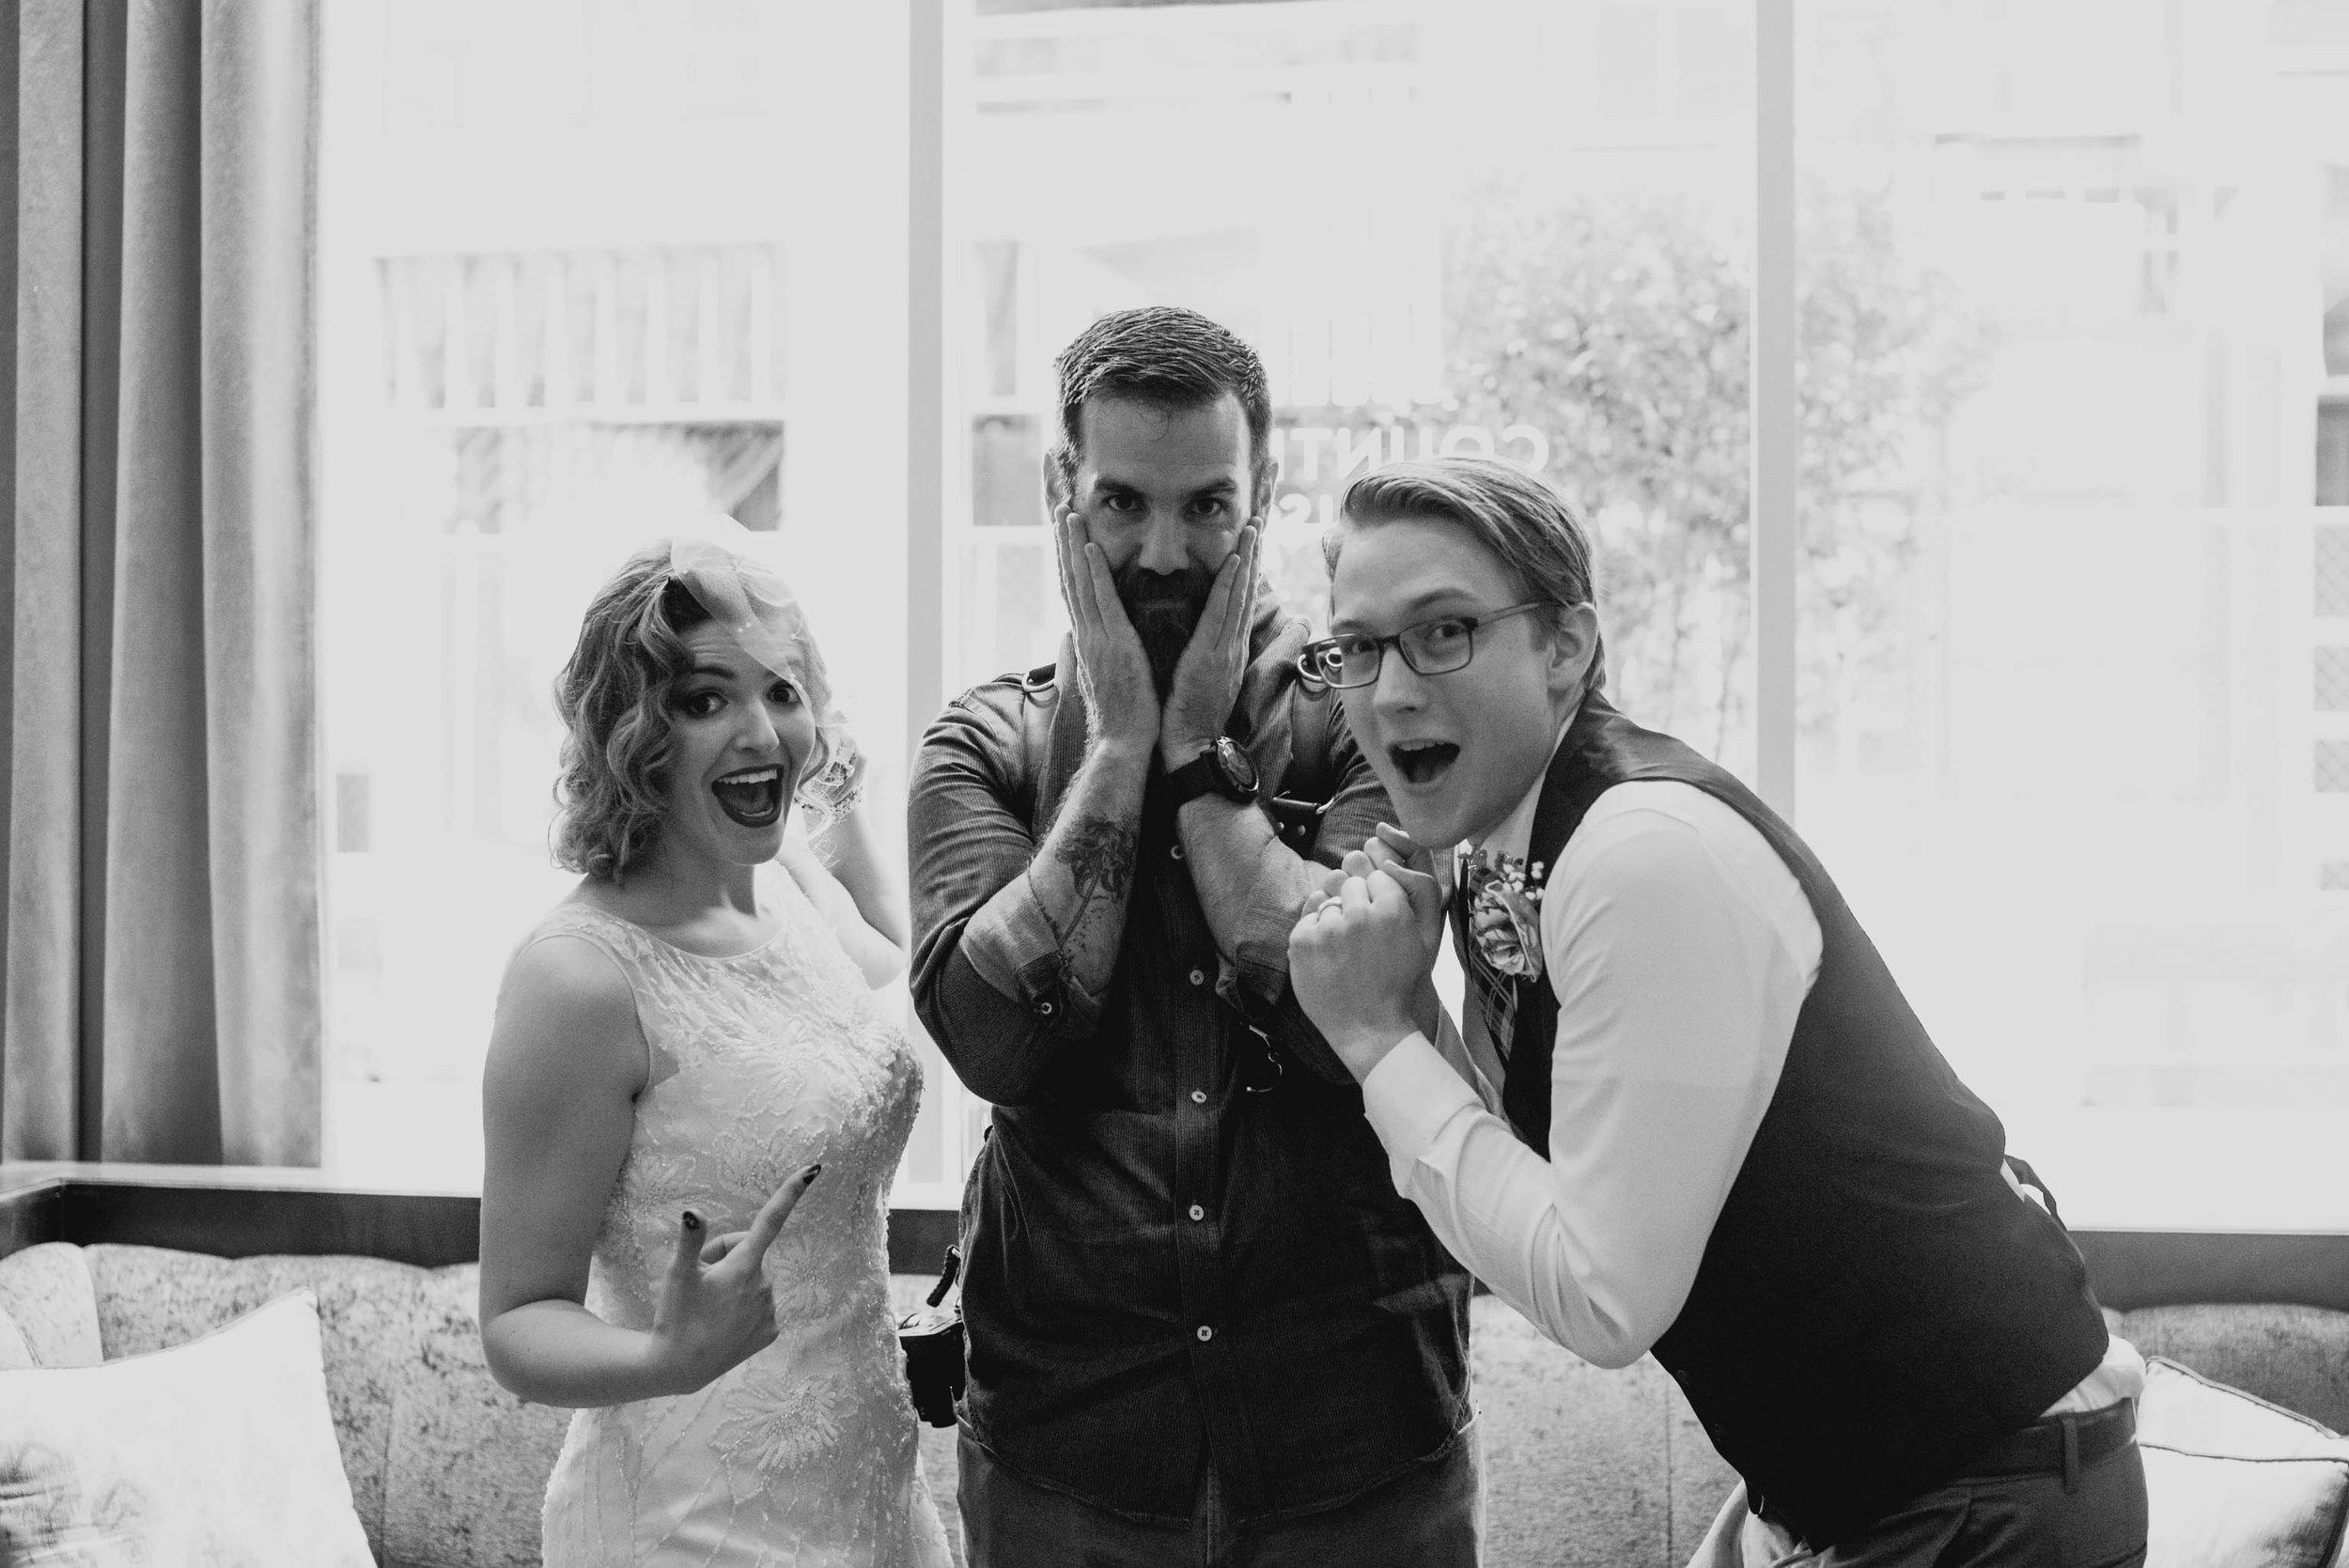 21c-hotel-durham-offbeat-wedding-photographer-Adam-Chapin.jpg